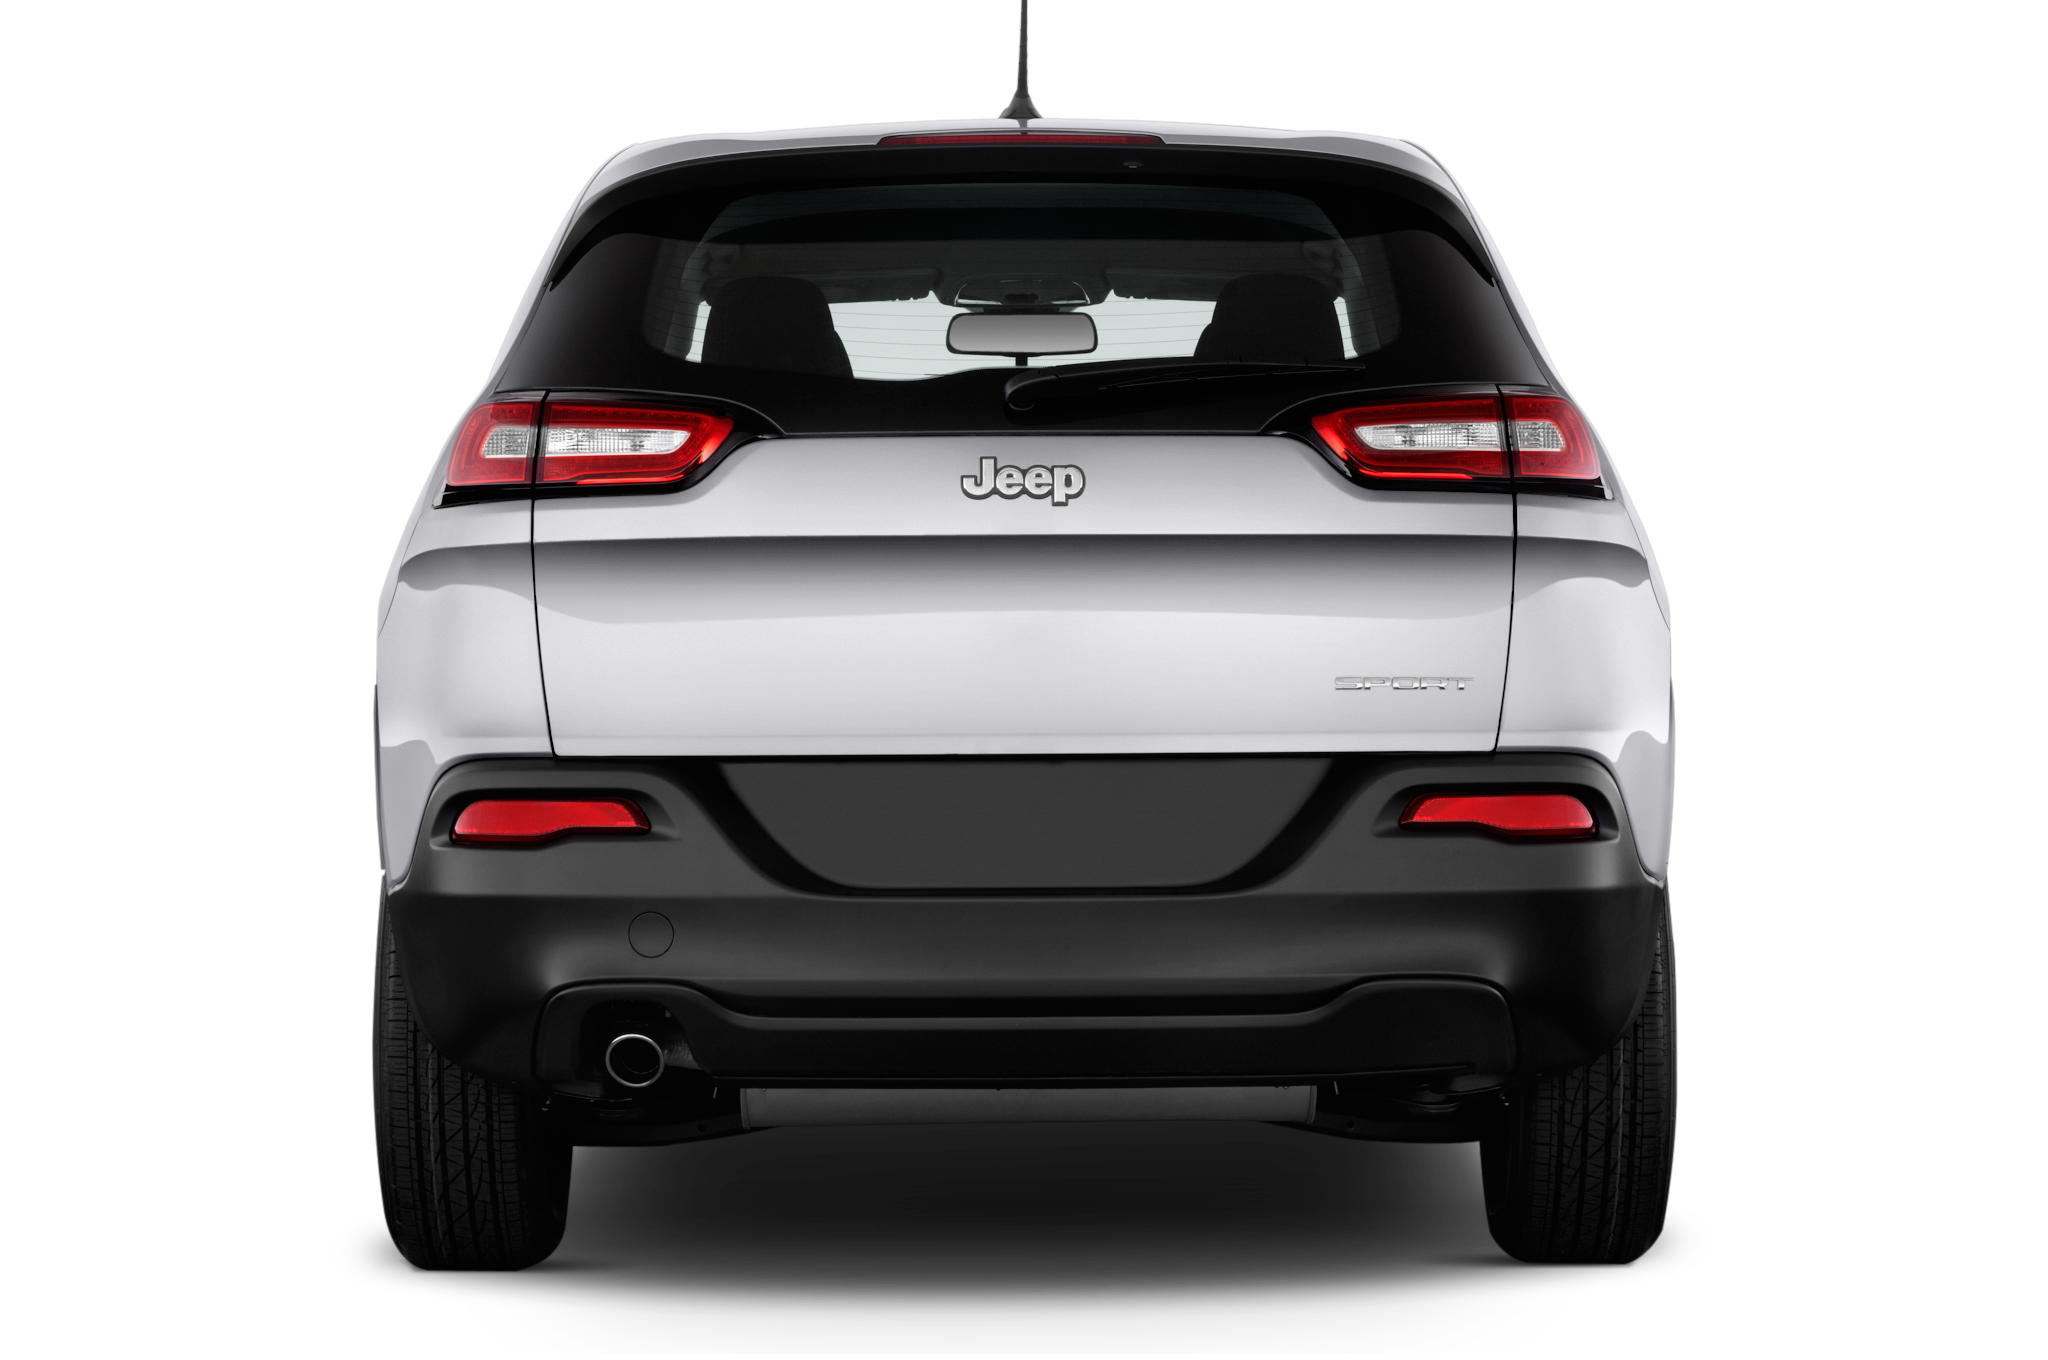 2016 jeep cherokee gains luxurious overland model. Black Bedroom Furniture Sets. Home Design Ideas